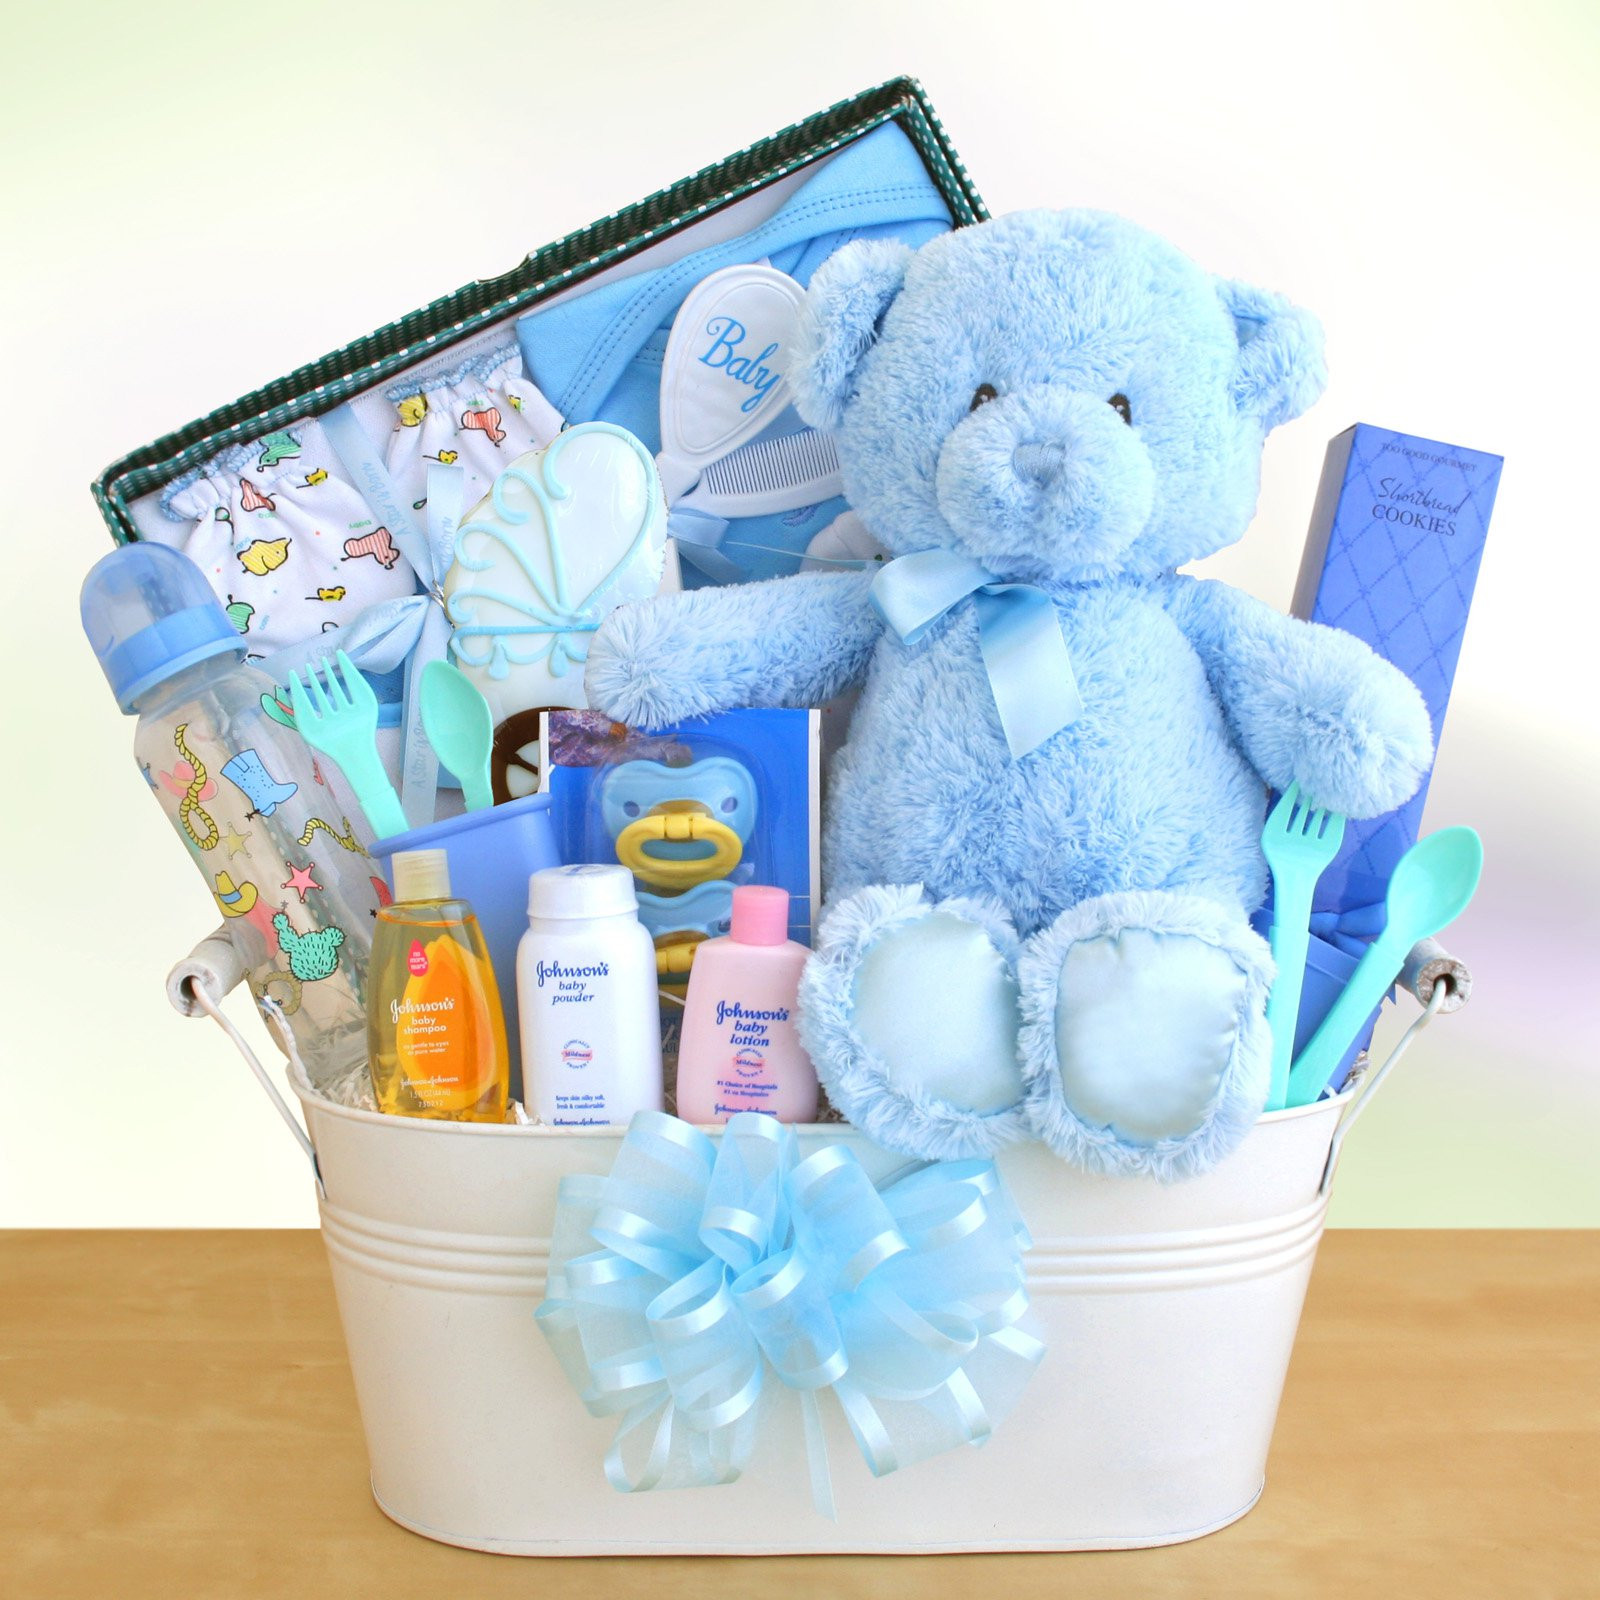 Best ideas about Baby Boy Shower Gift Ideas . Save or Pin New Arrival Baby Boy Gift Basket Gift Baskets by Now.